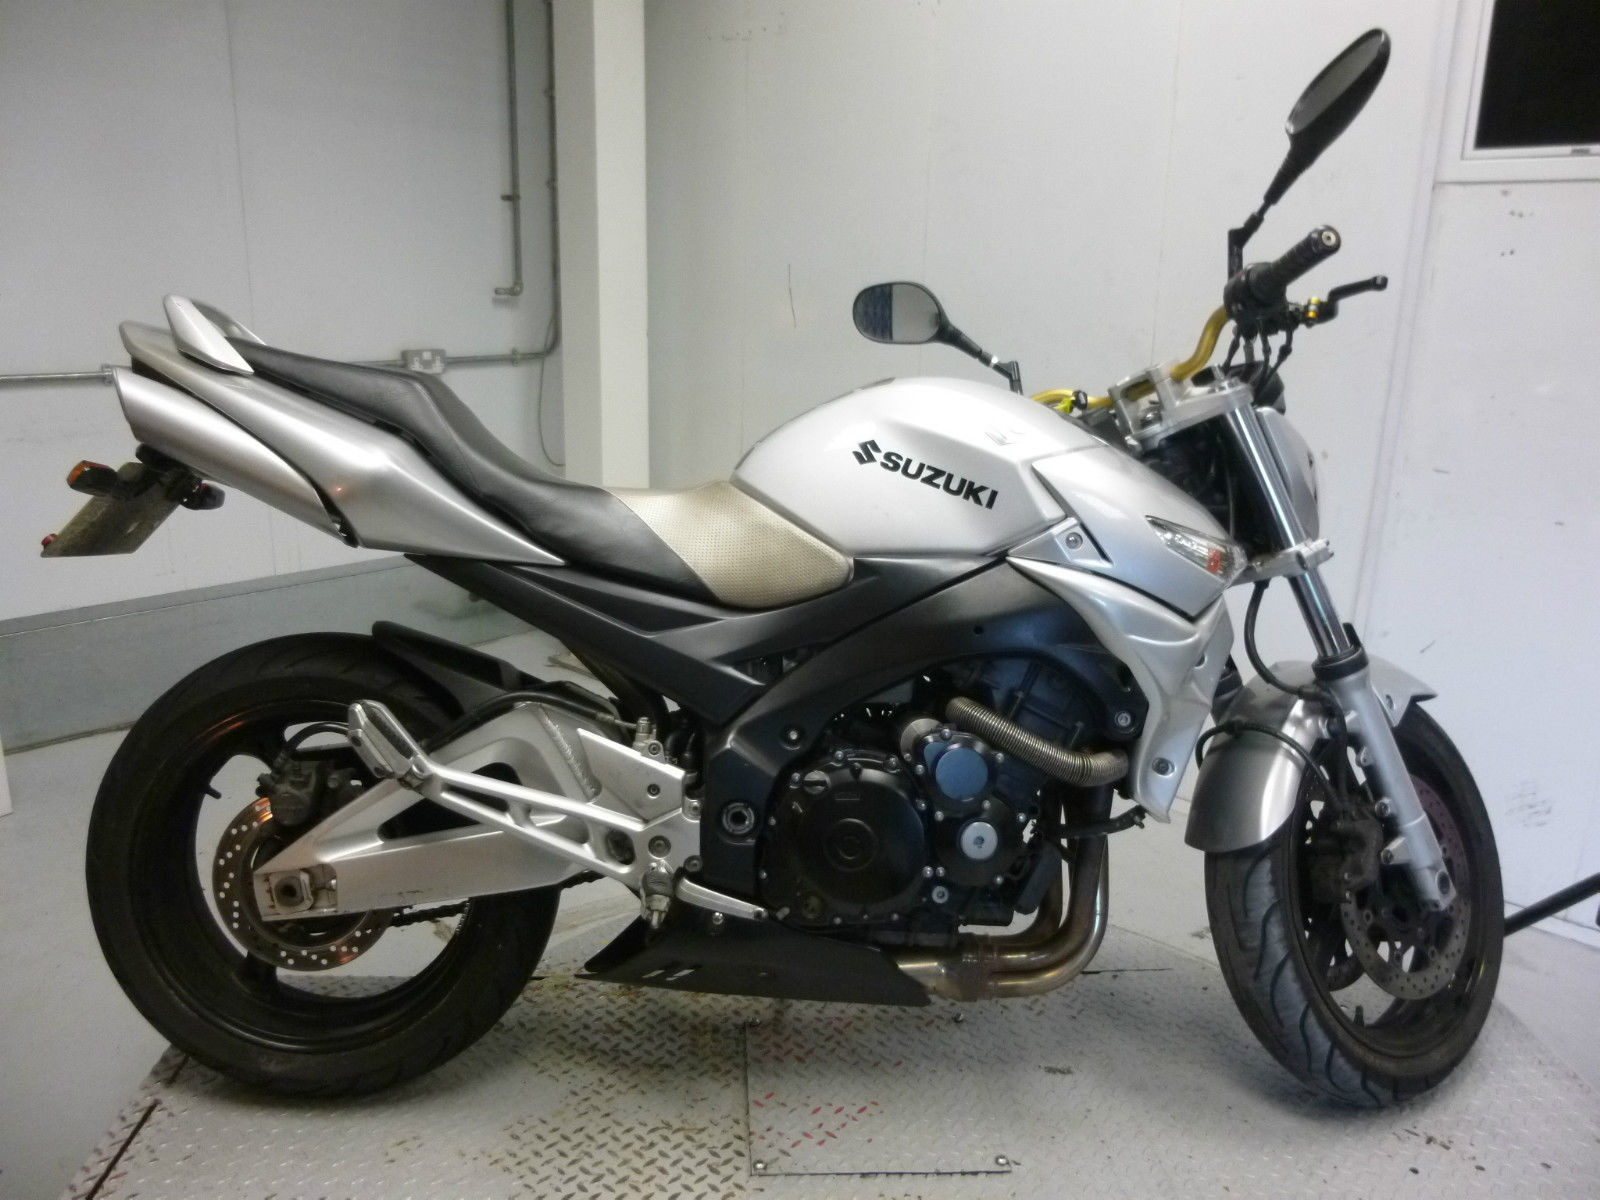 2008 suzuki gsr 600 k7 damaged spares or repair no reserve 6494. Black Bedroom Furniture Sets. Home Design Ideas